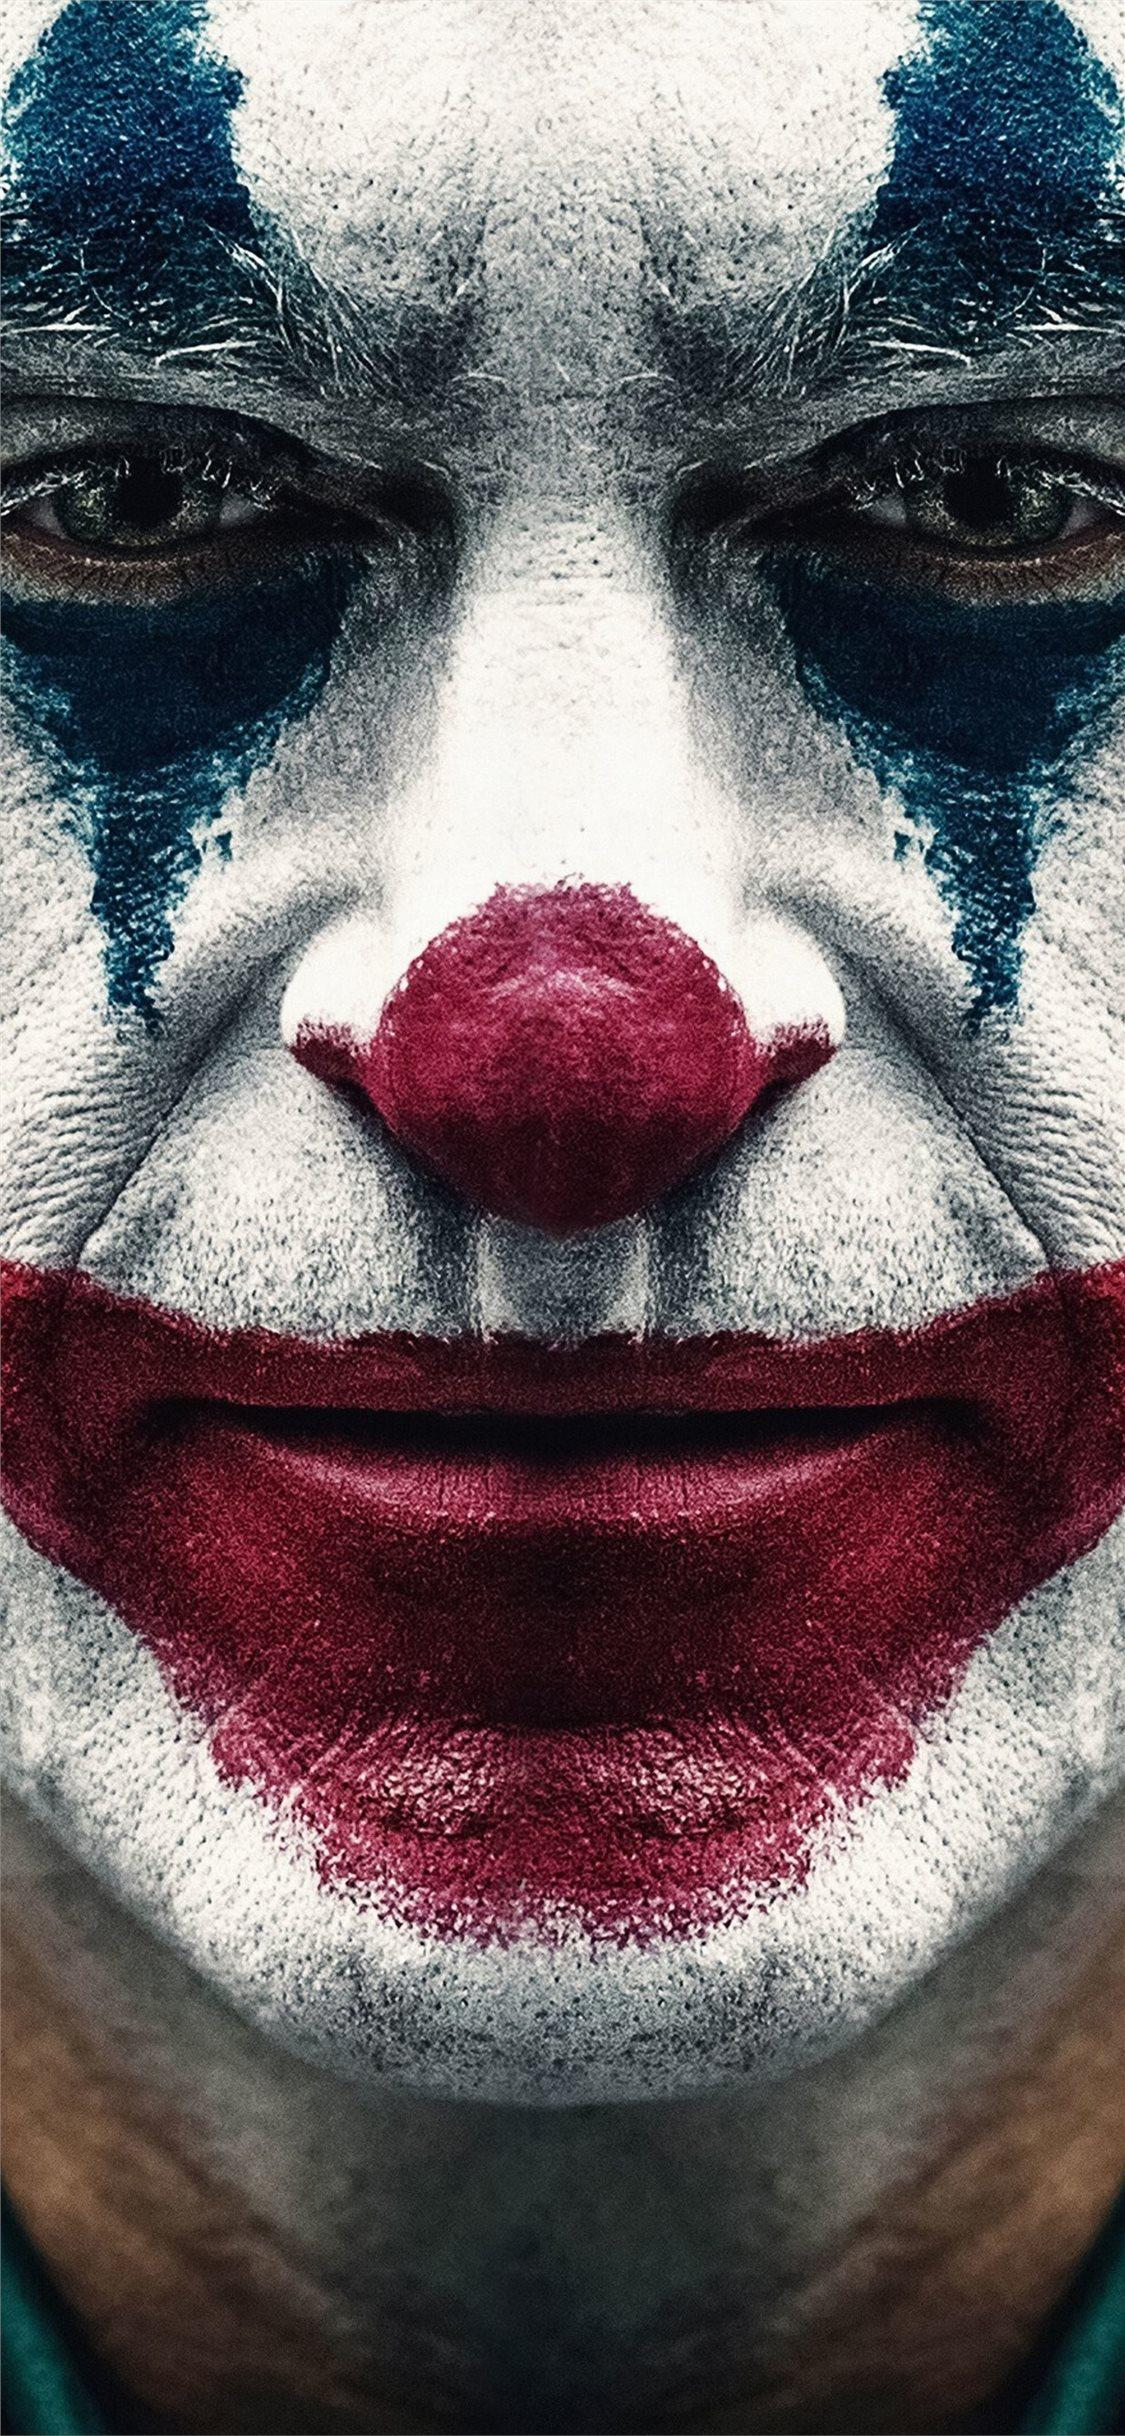 joker 2019 joaquin phoenix clown iPhone X Wallpapers Free